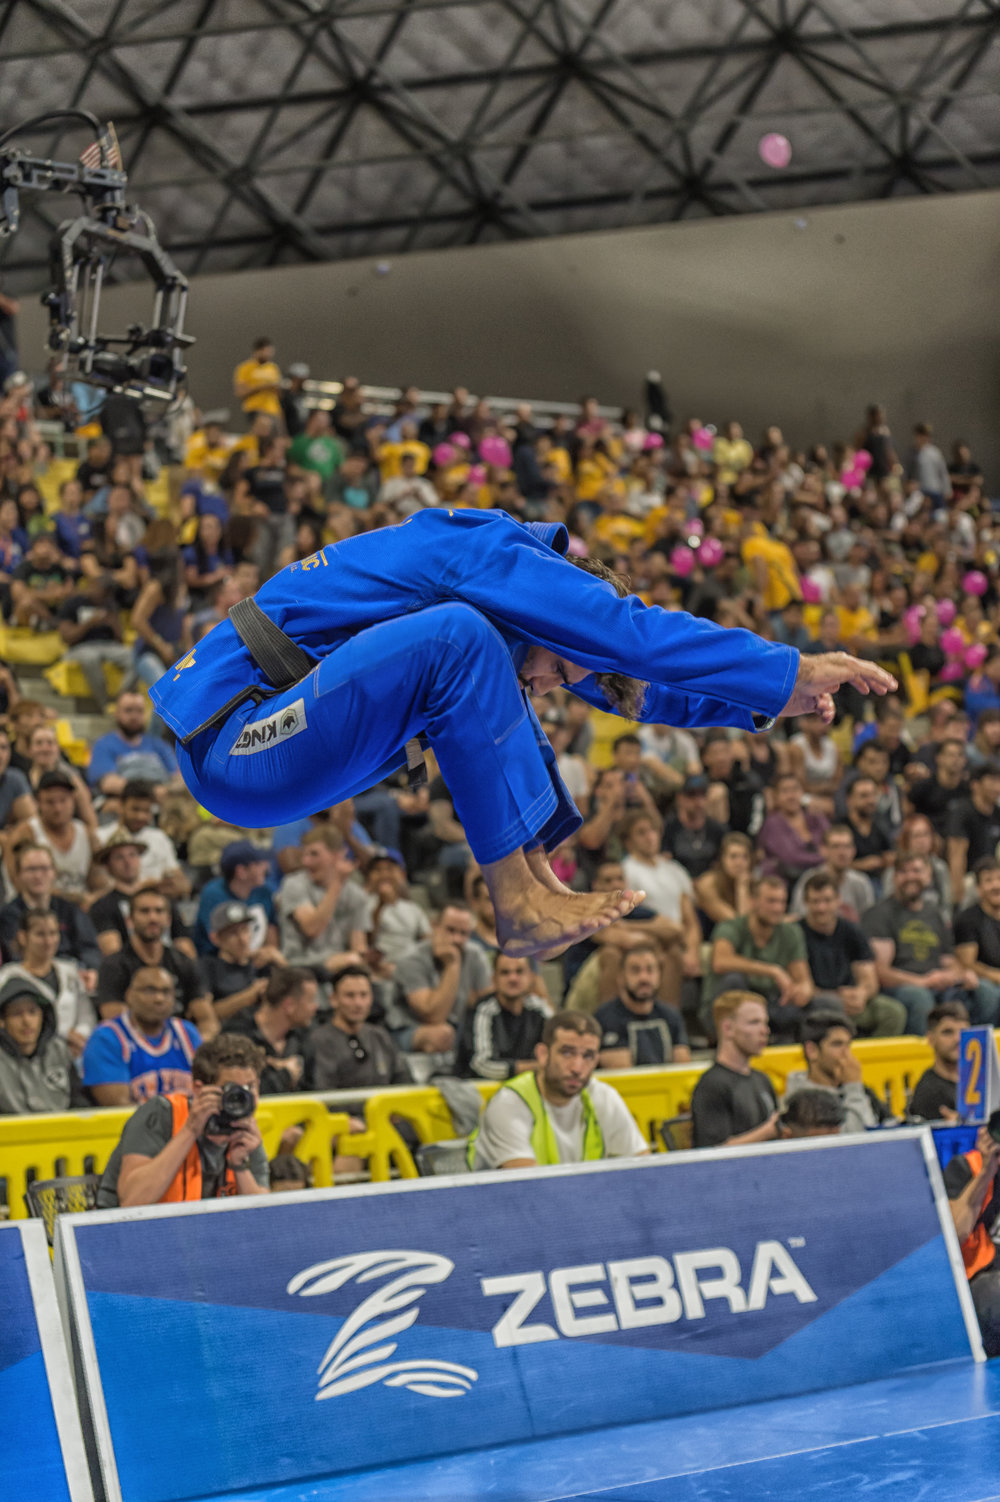 Leandro Lo's pre comp ritual includes this vertical leap.